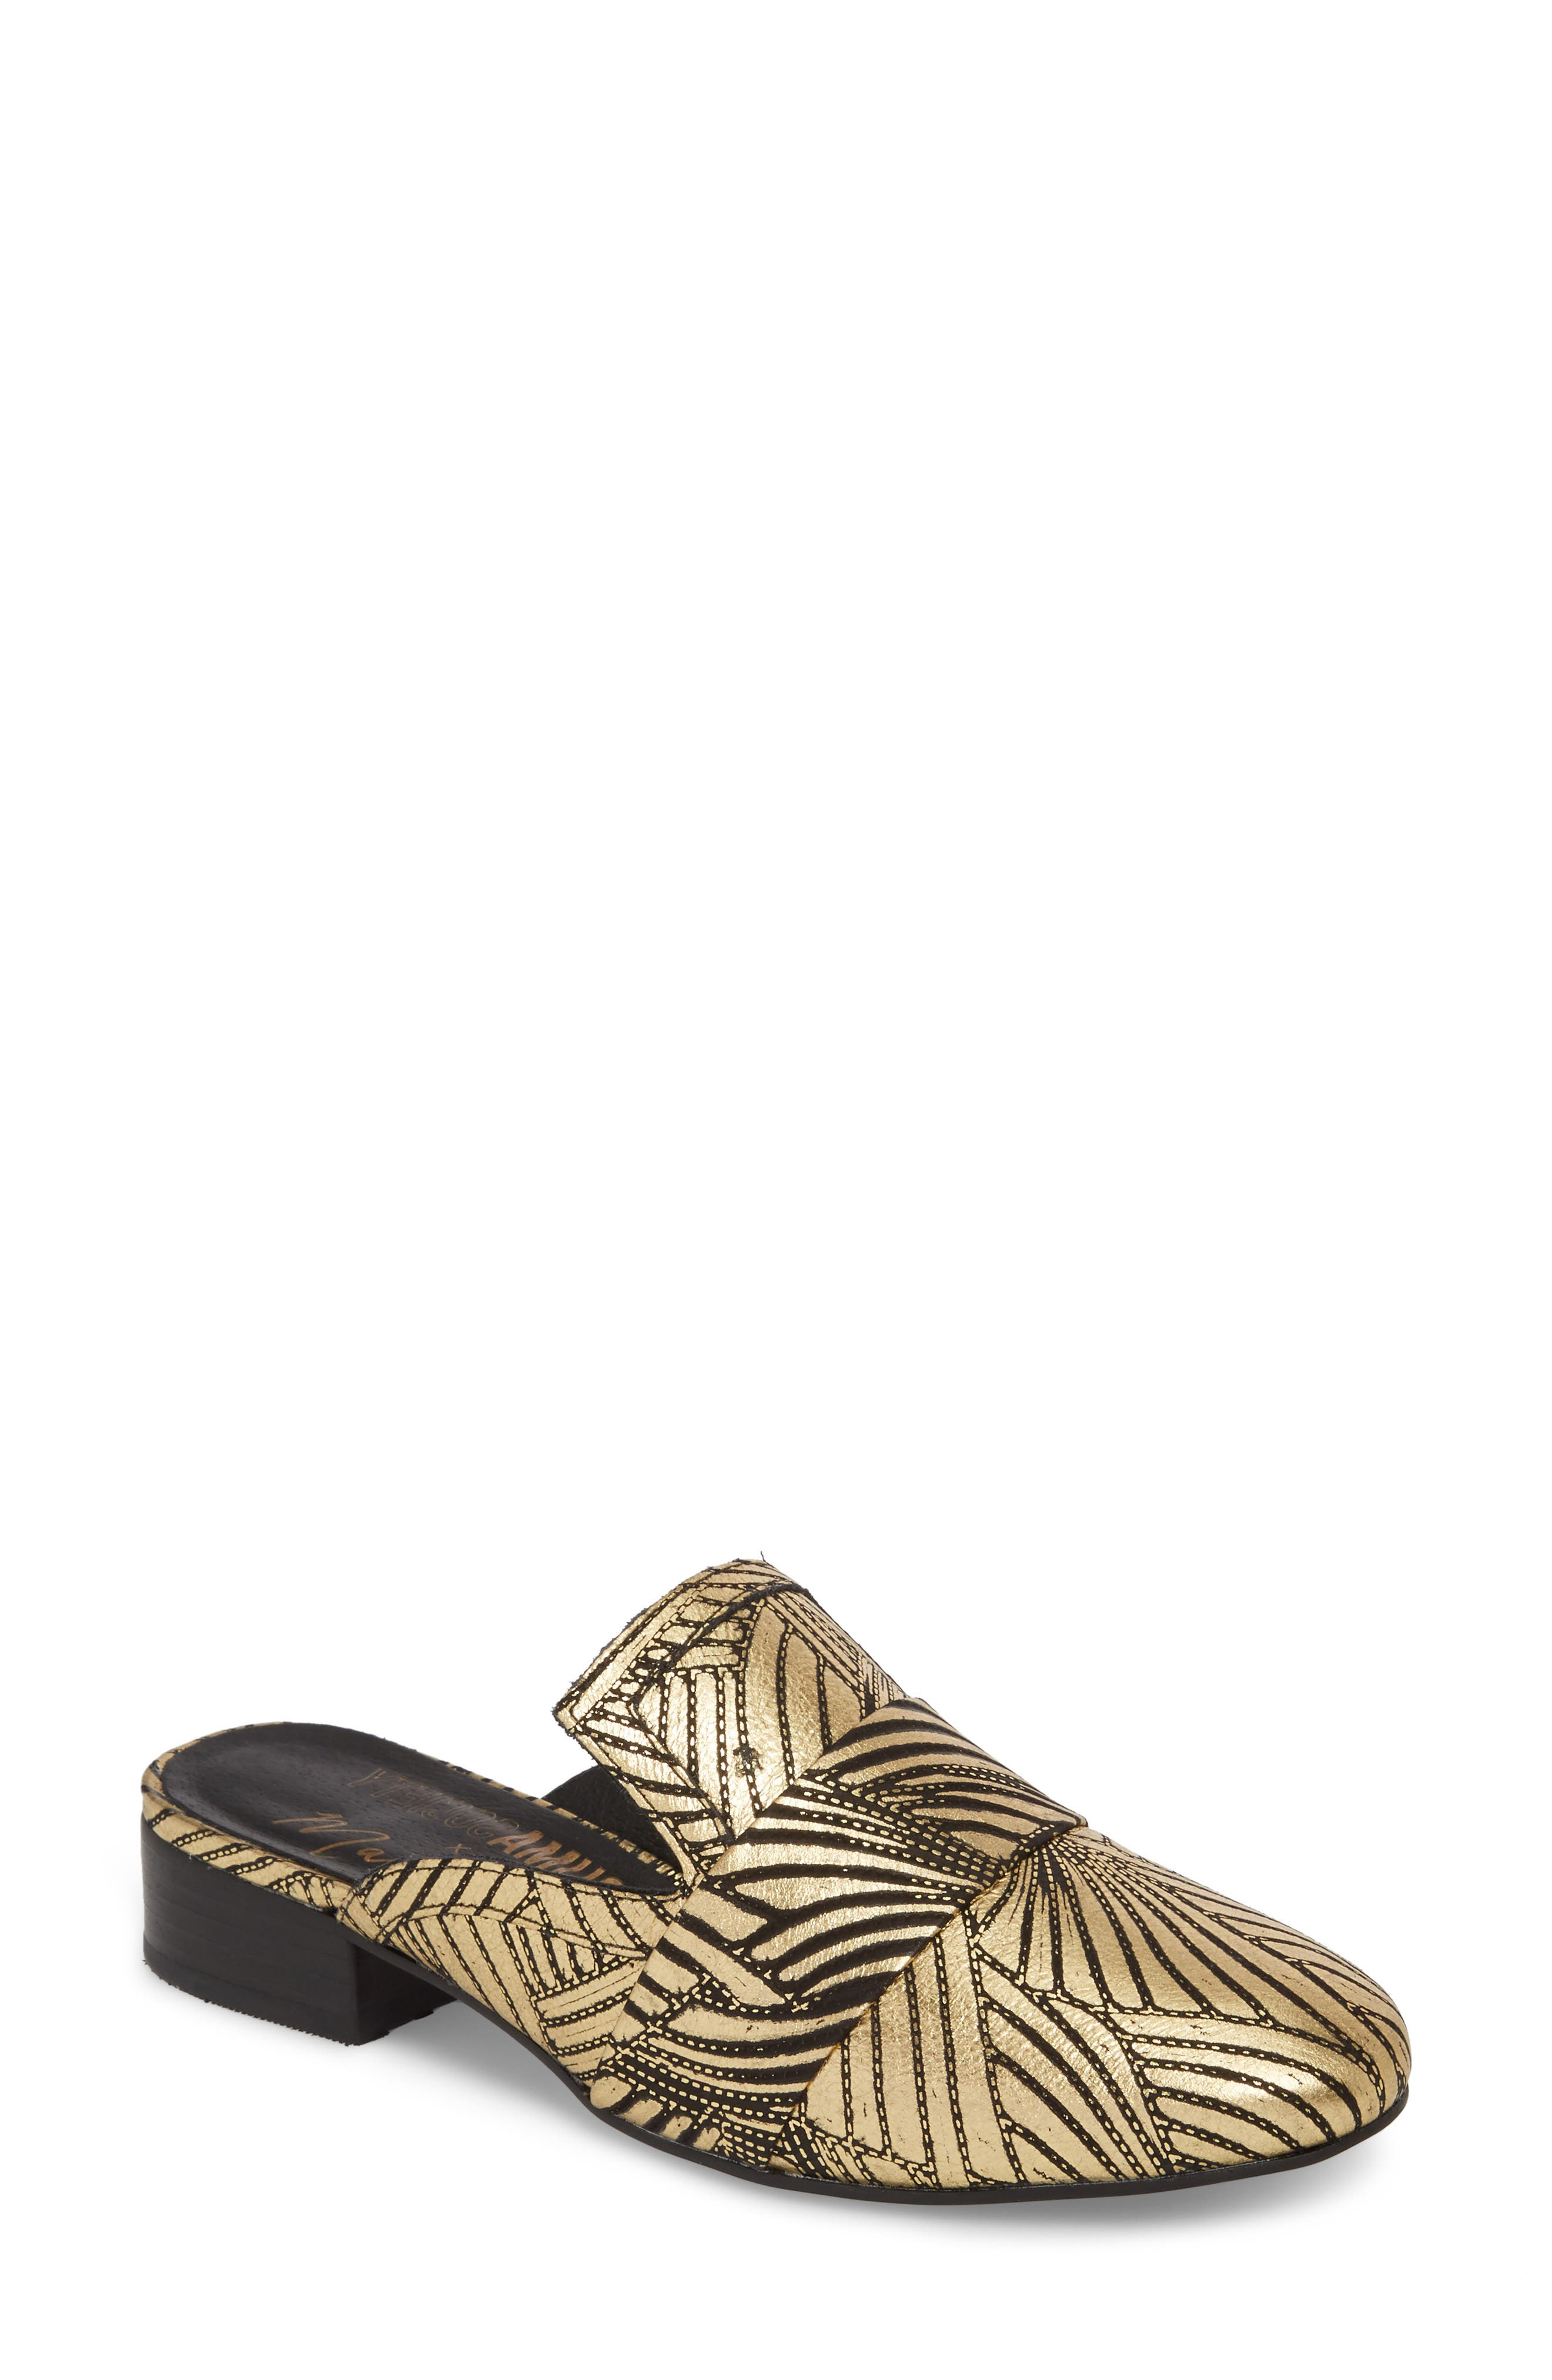 Amuse Society x Matisse Le Bella Loafer Mule,                             Main thumbnail 1, color,                             Gold Floral Leather